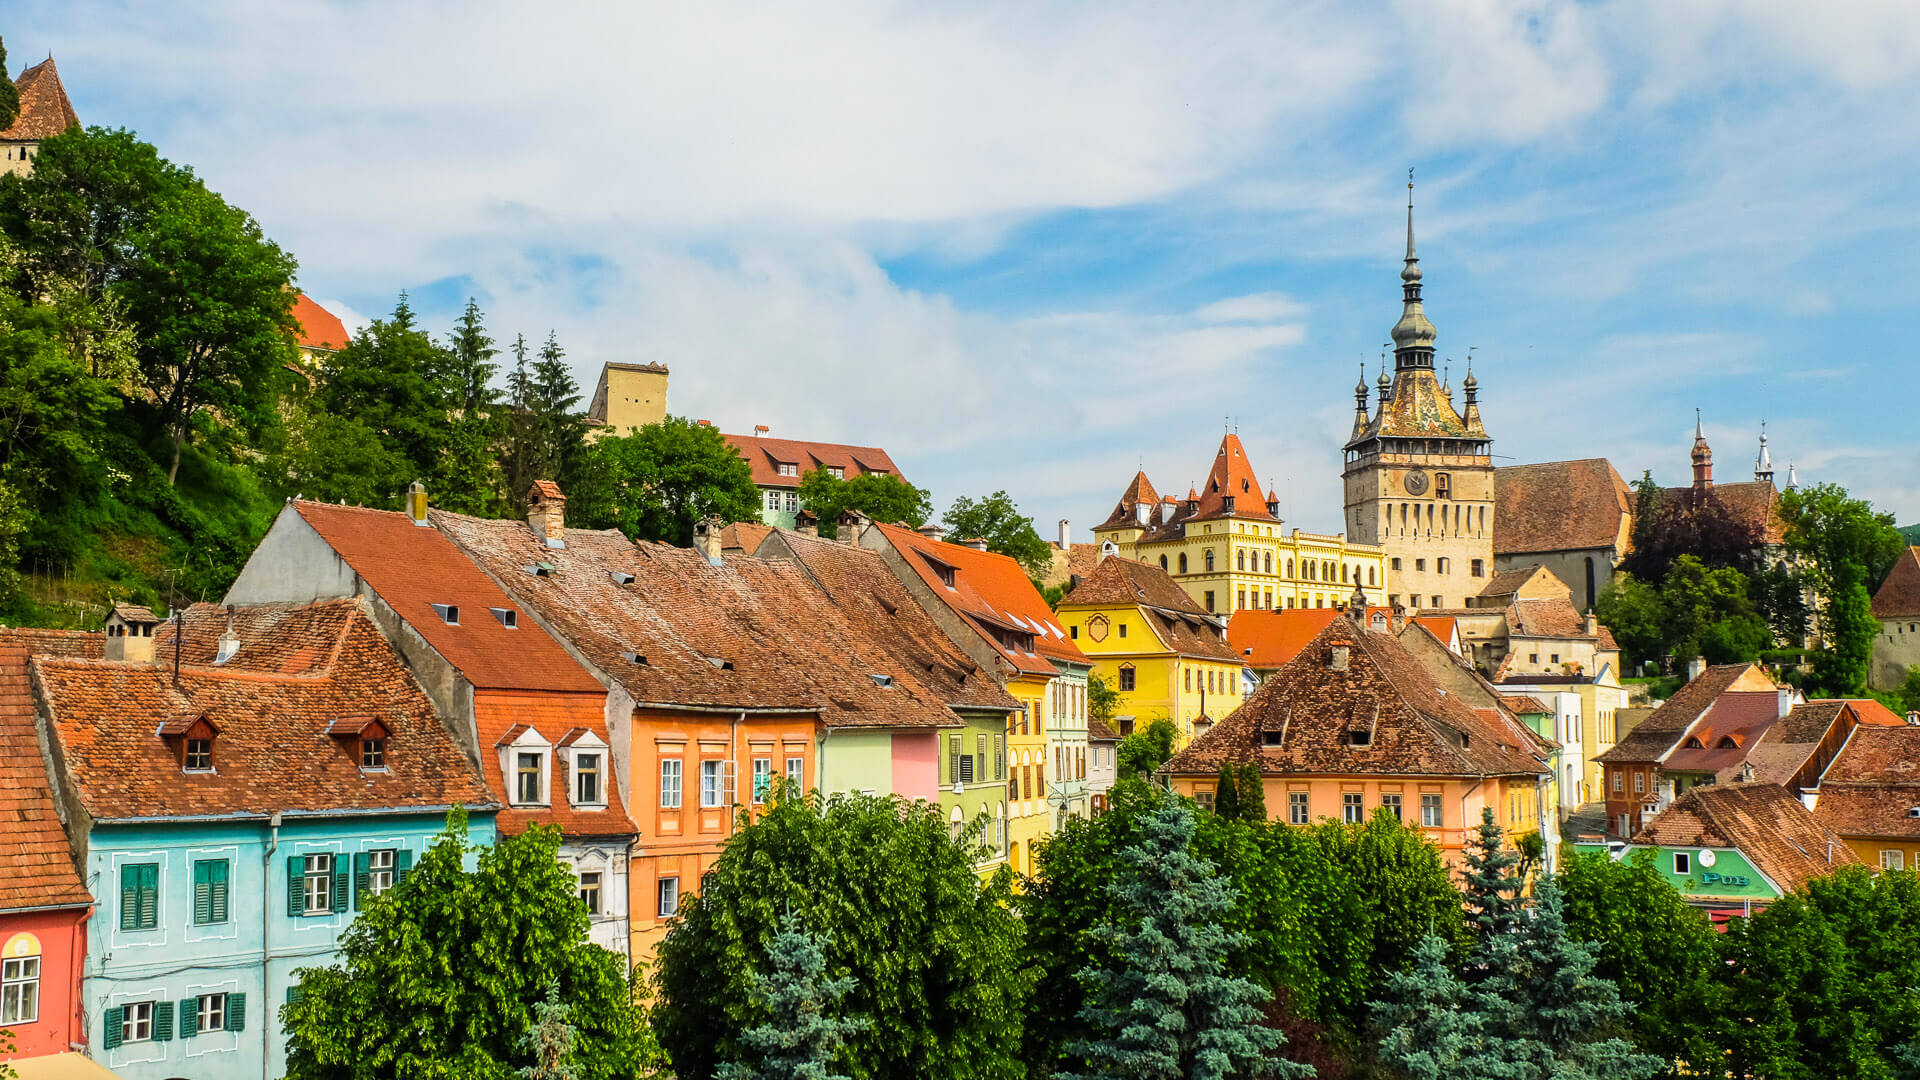 41Sighisoara and the fortified churches experience